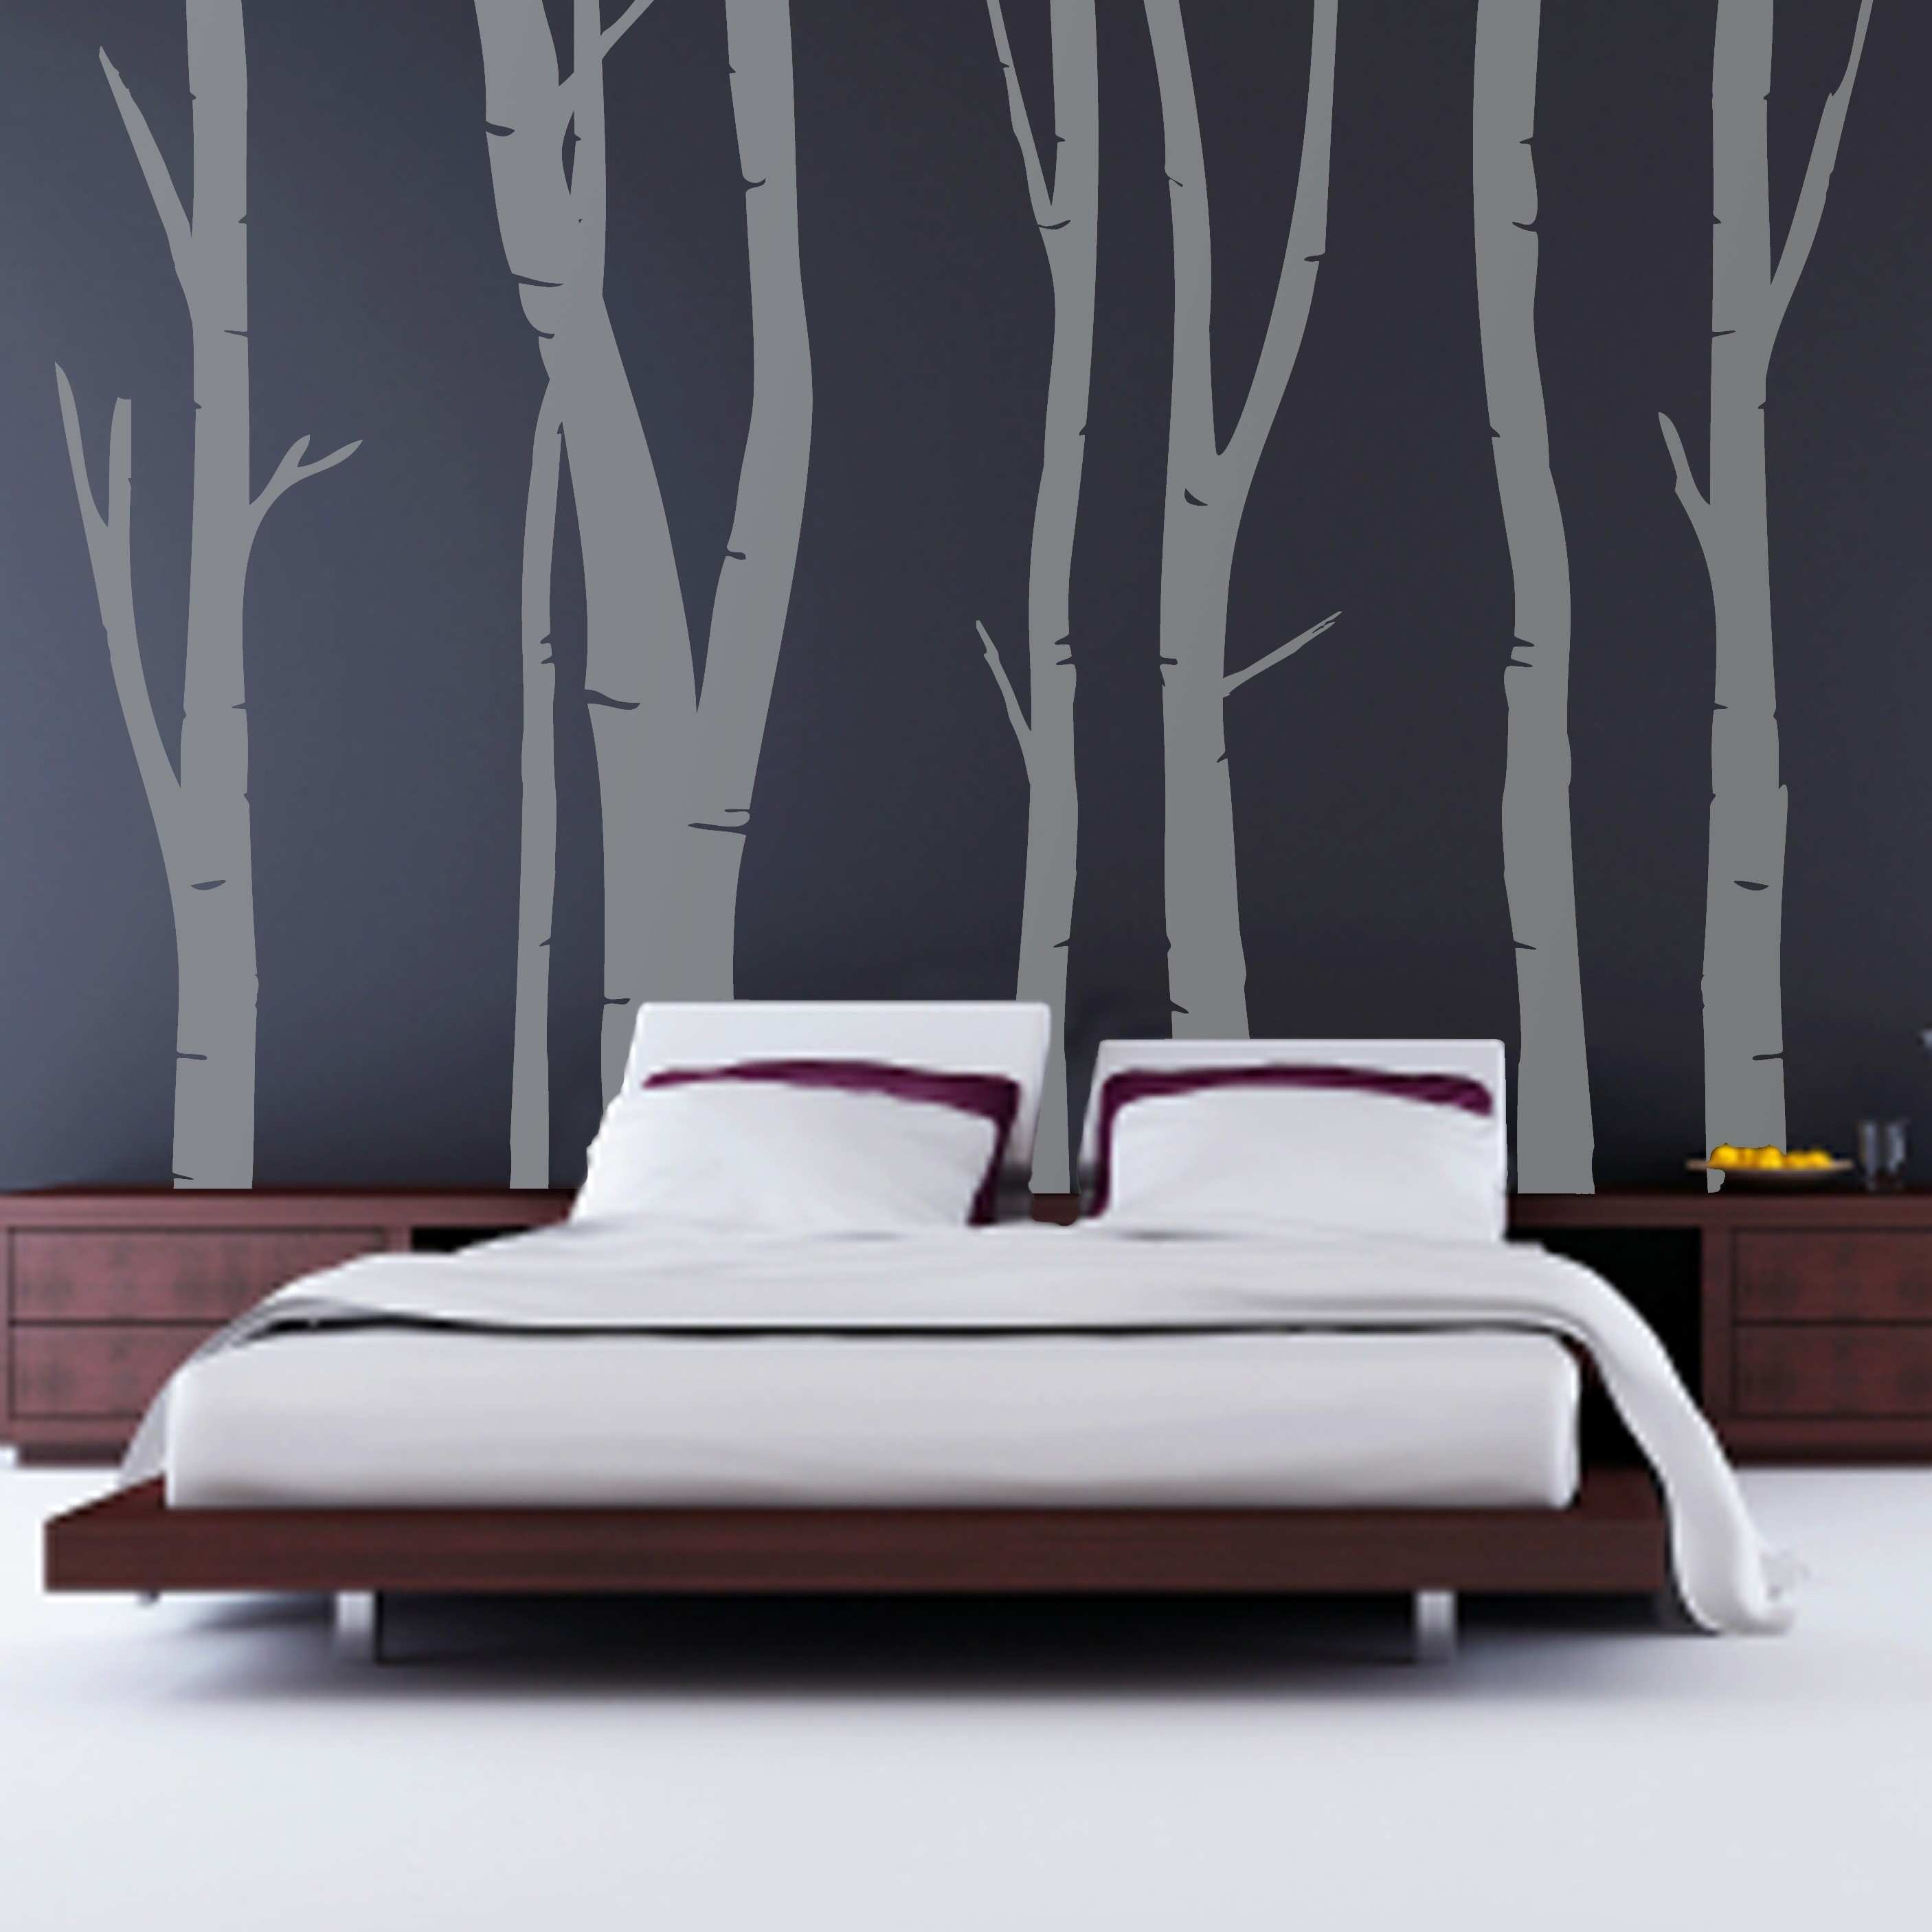 Home Decor Diy Wall Amazing Wall Decals for Bedroom Unique 1